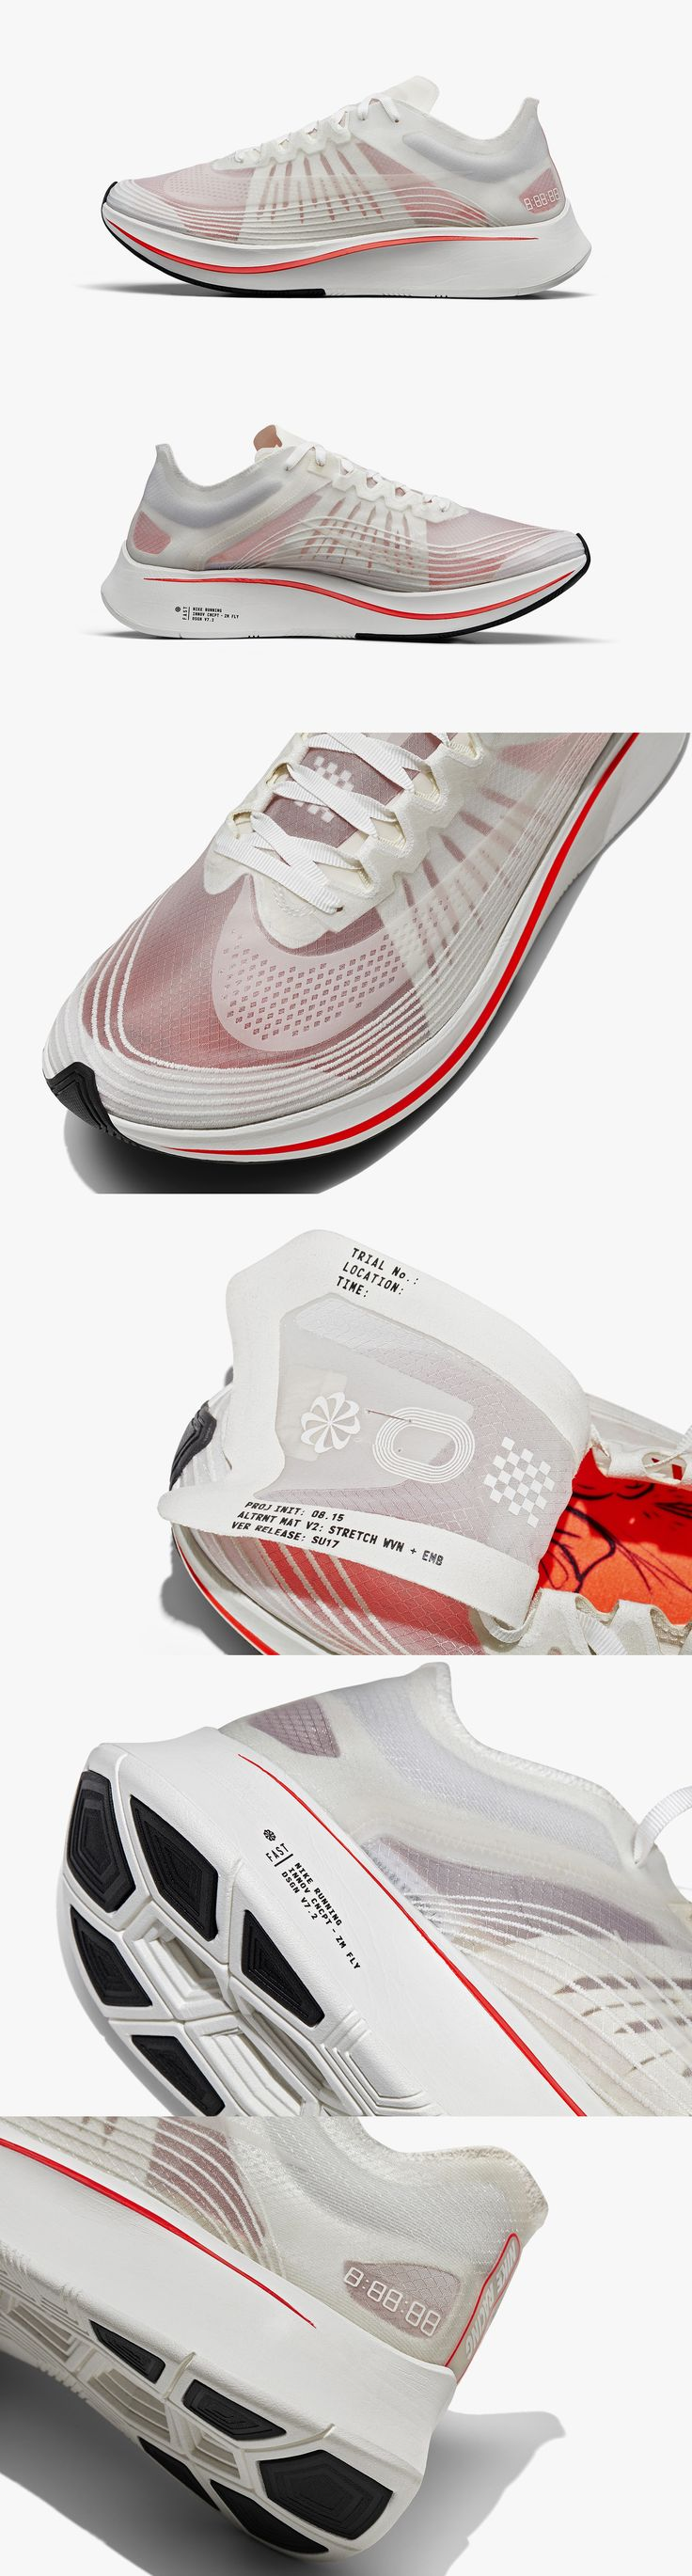 NikeLab Zoom Fly - Breaking2 Special Edition